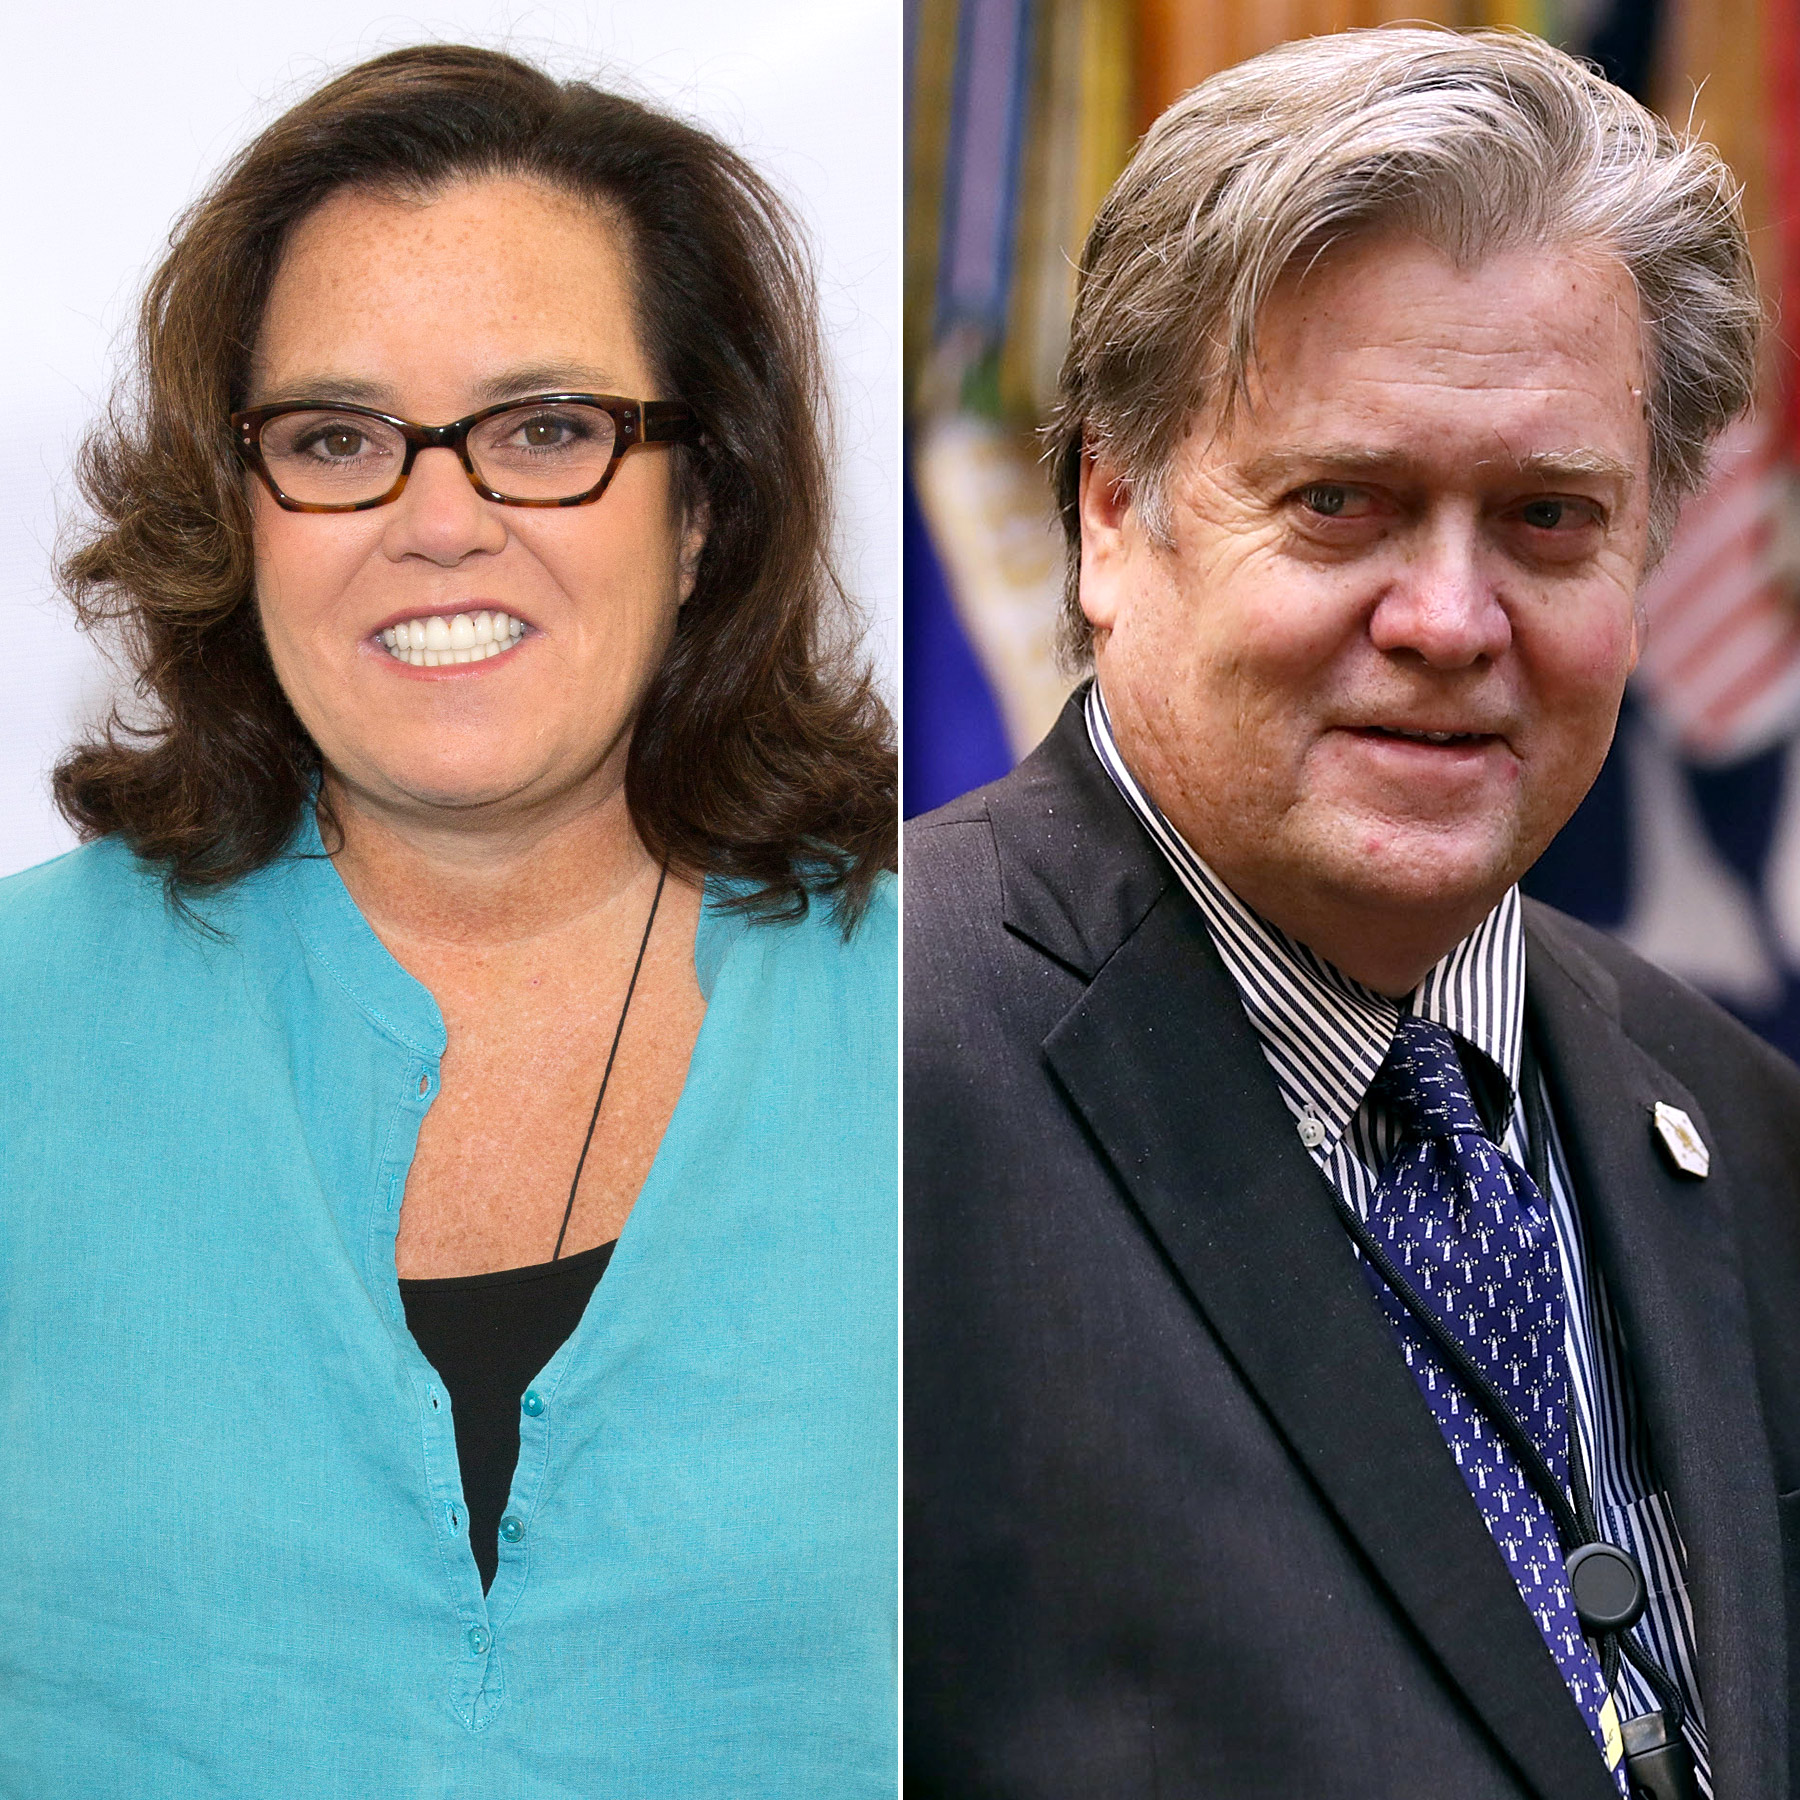 Rosie O'Donnell will play Steve Bannon on SNL